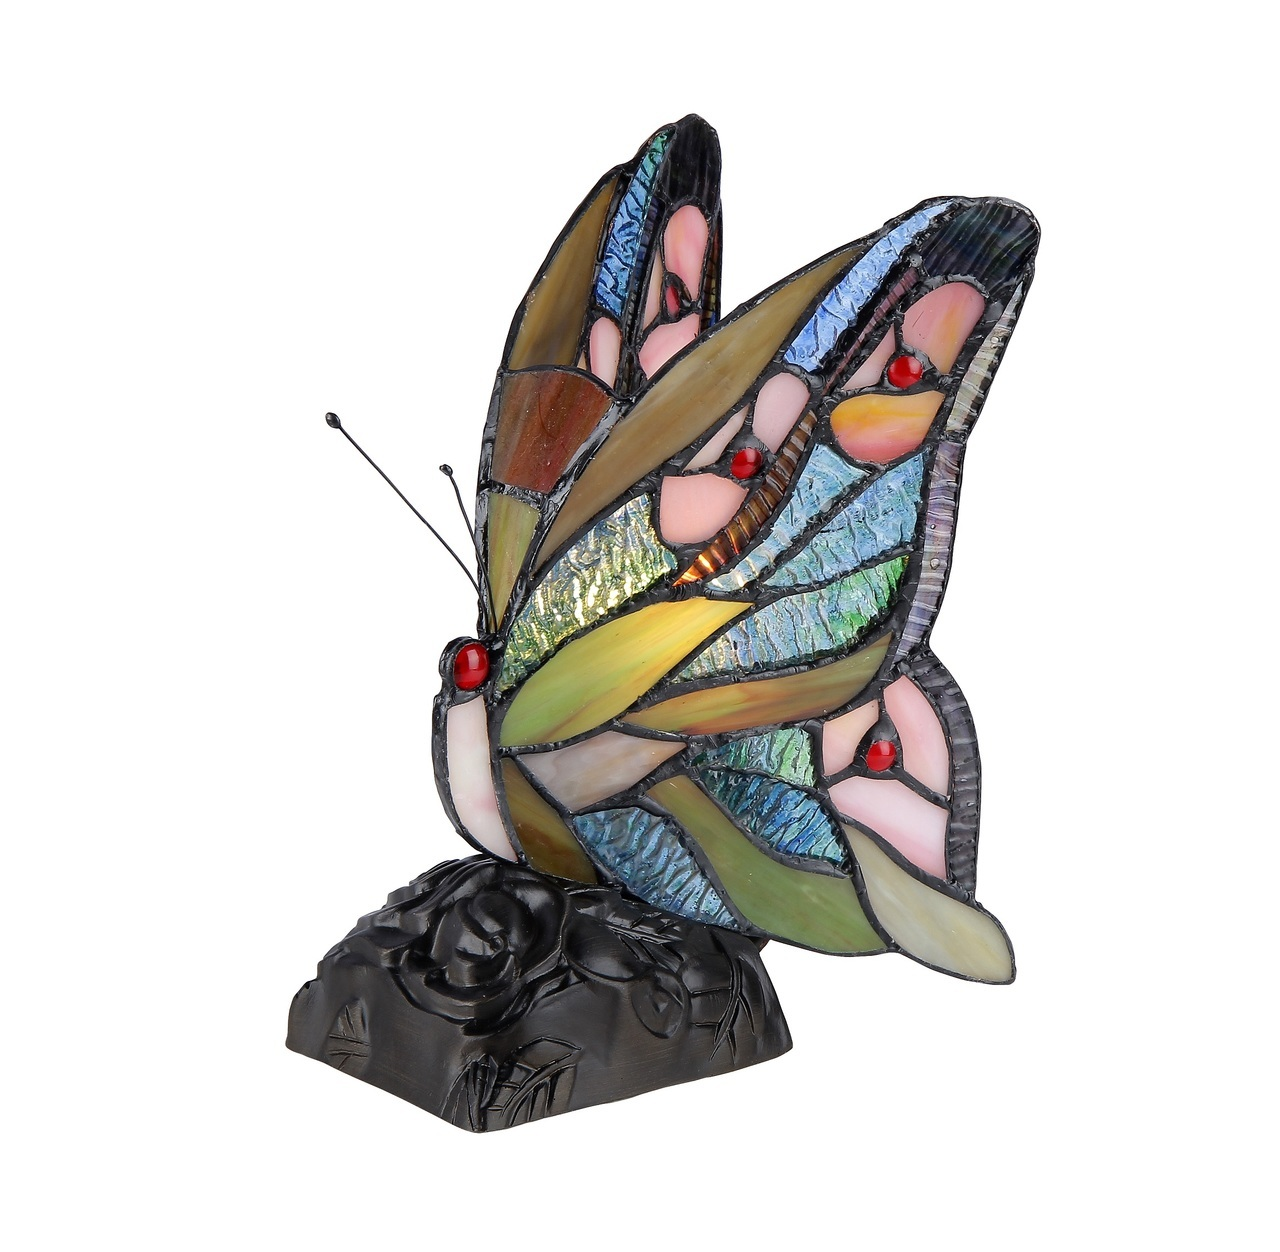 chloe lighting jacy stained glass light butterfly accent table lamp main drawer chest gallerie sofa coral home accents tall telephone jeromes furniture placemat outside chairs